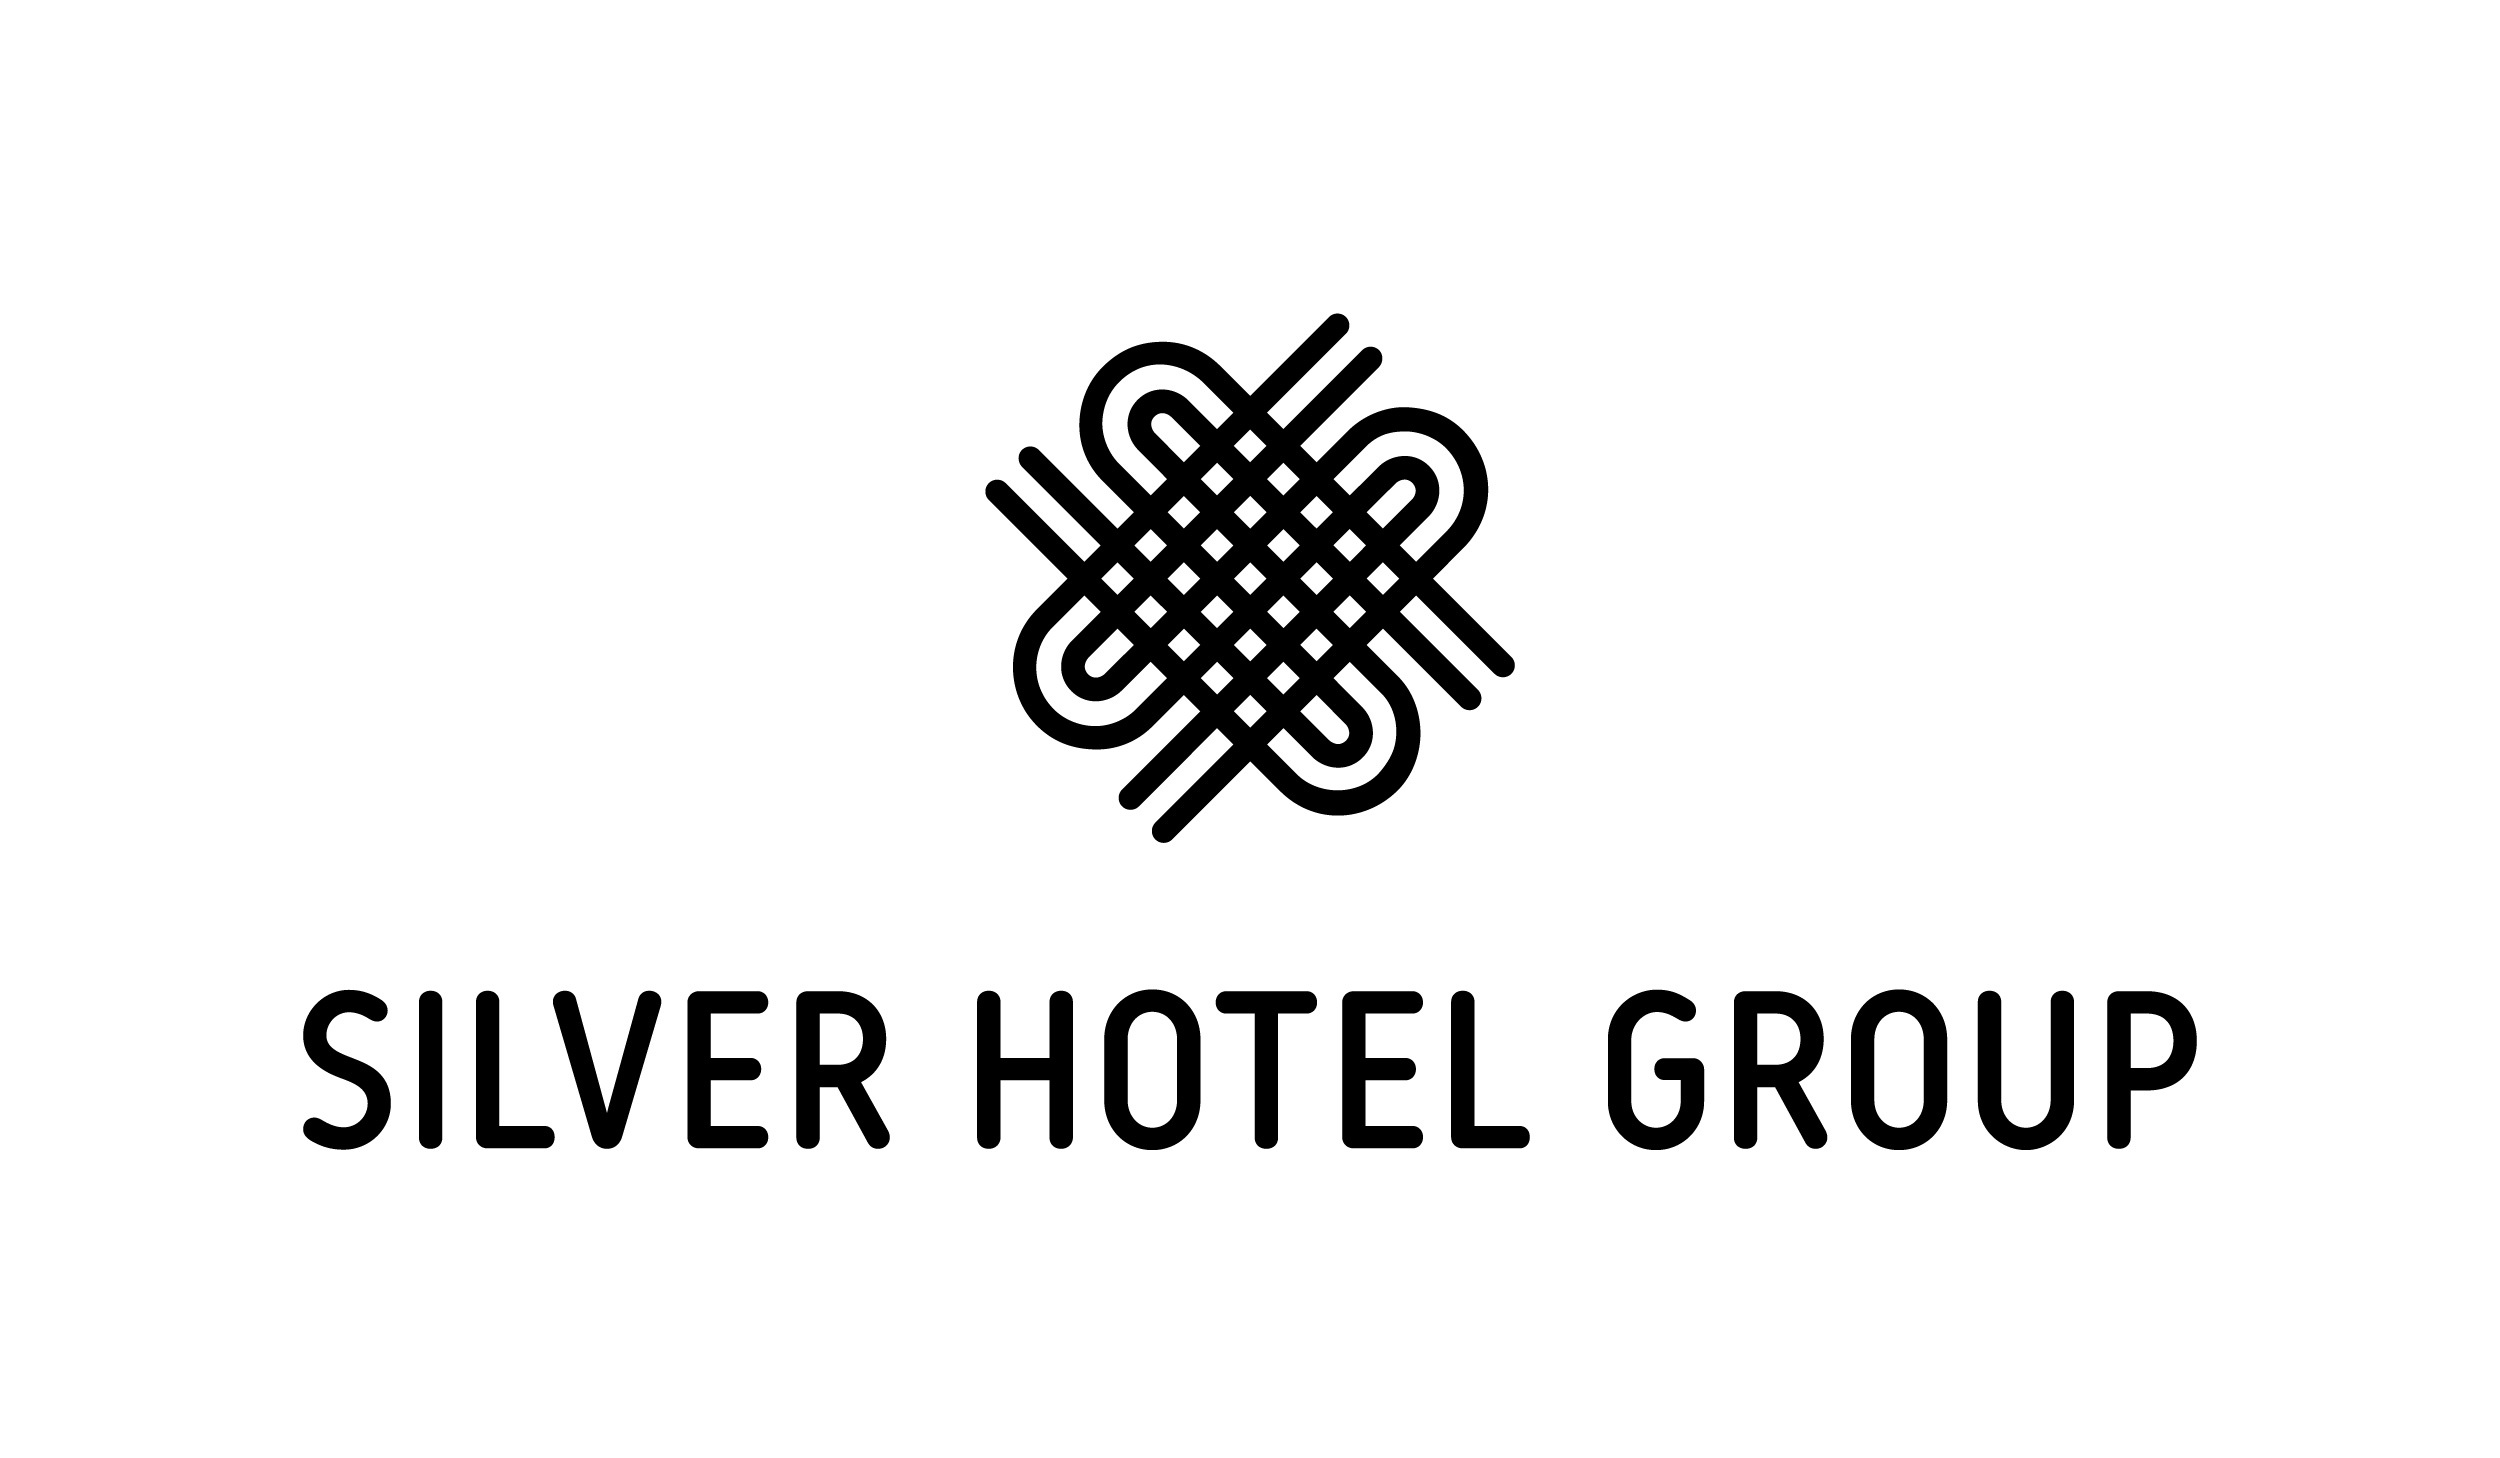 Silver Hotel Group